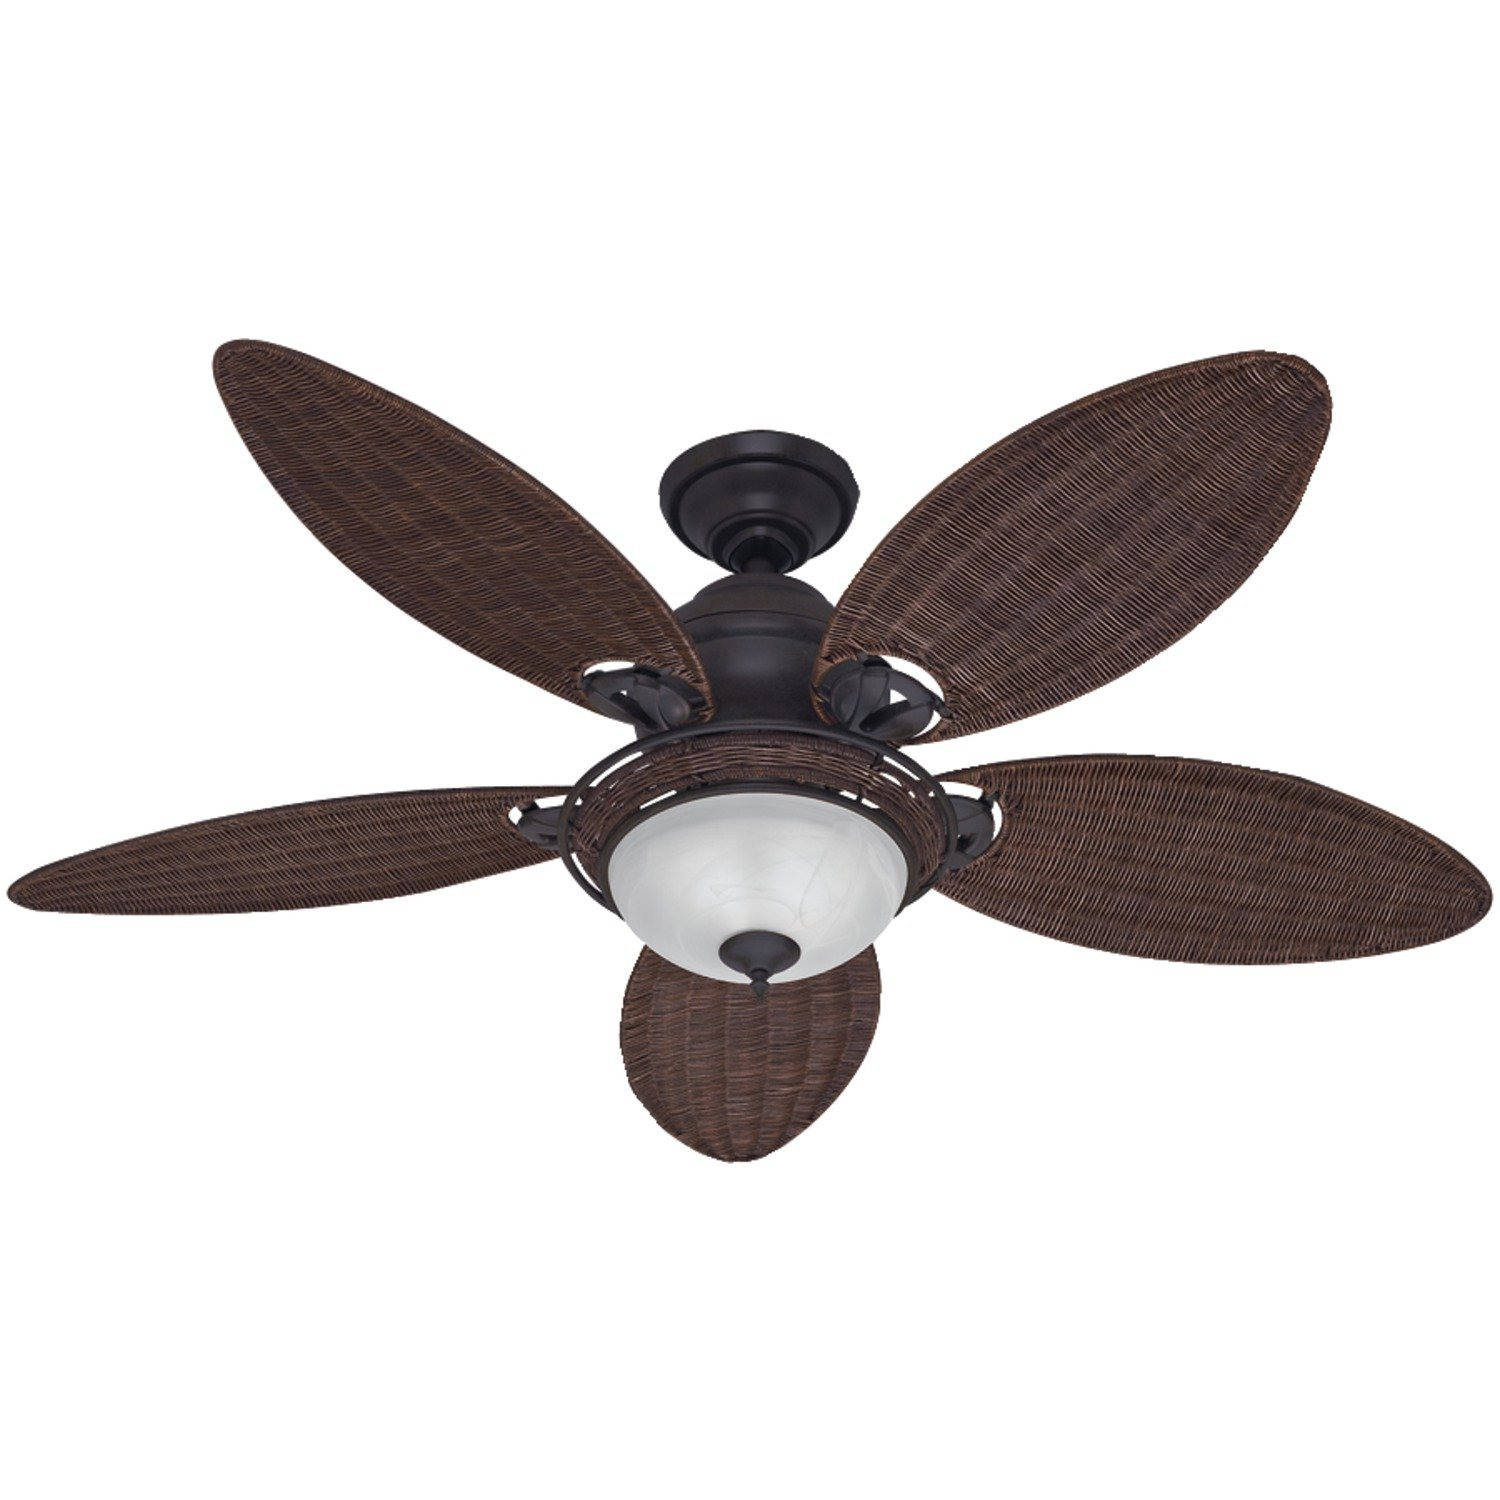 Best man cave ceiling fans man cave mastery hunter fan company 54095 caribbean breeze 54 inch ceiling fan aloadofball Image collections